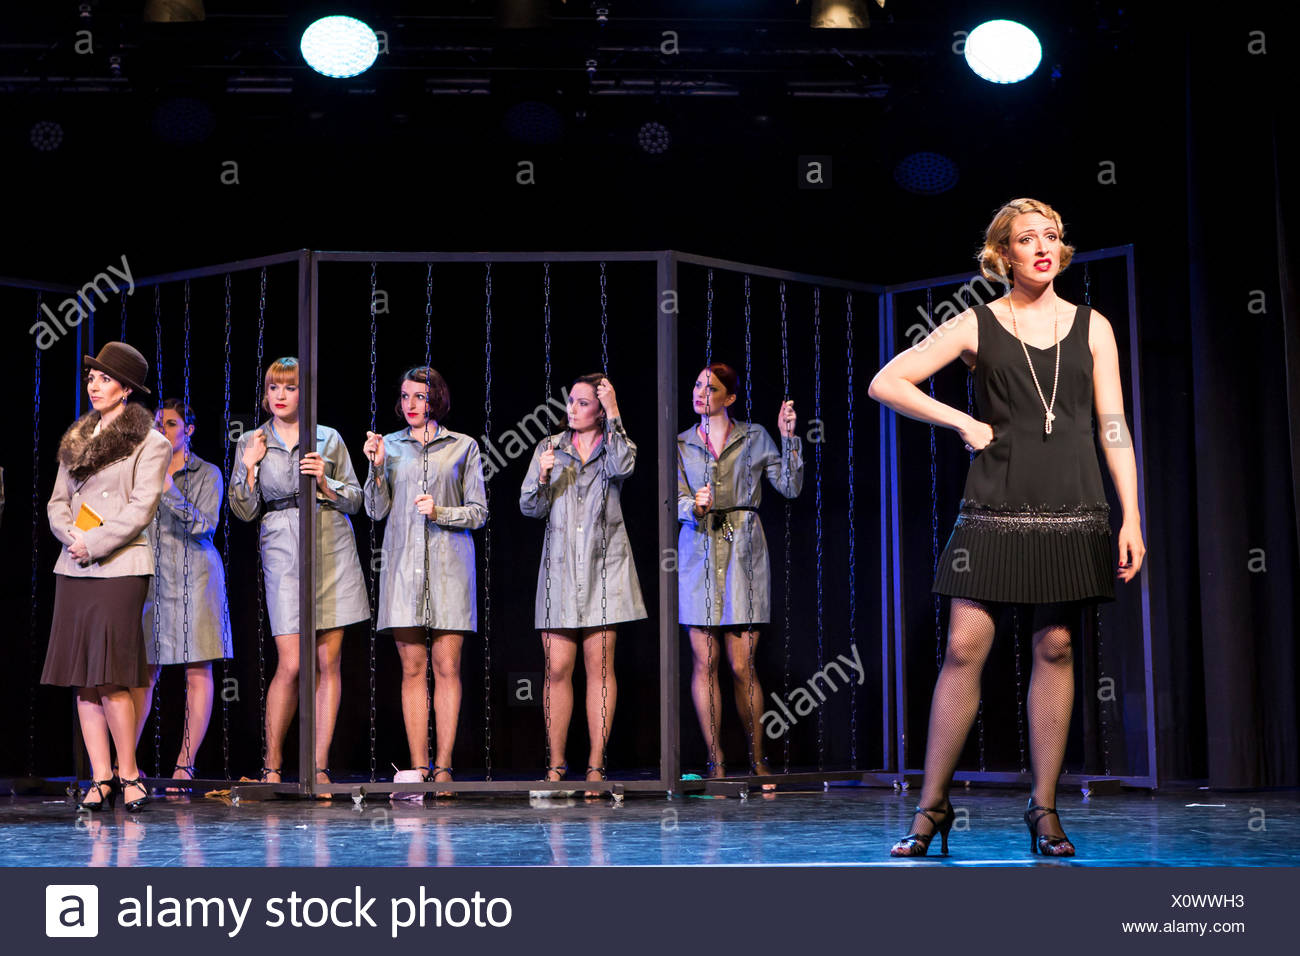 Musical 'Chicago', with Natascha-Cecillia Hill as Velma Kelly, live performance, Le Théâtre in Kriens, Lucerne, Switzerland - Stock Image